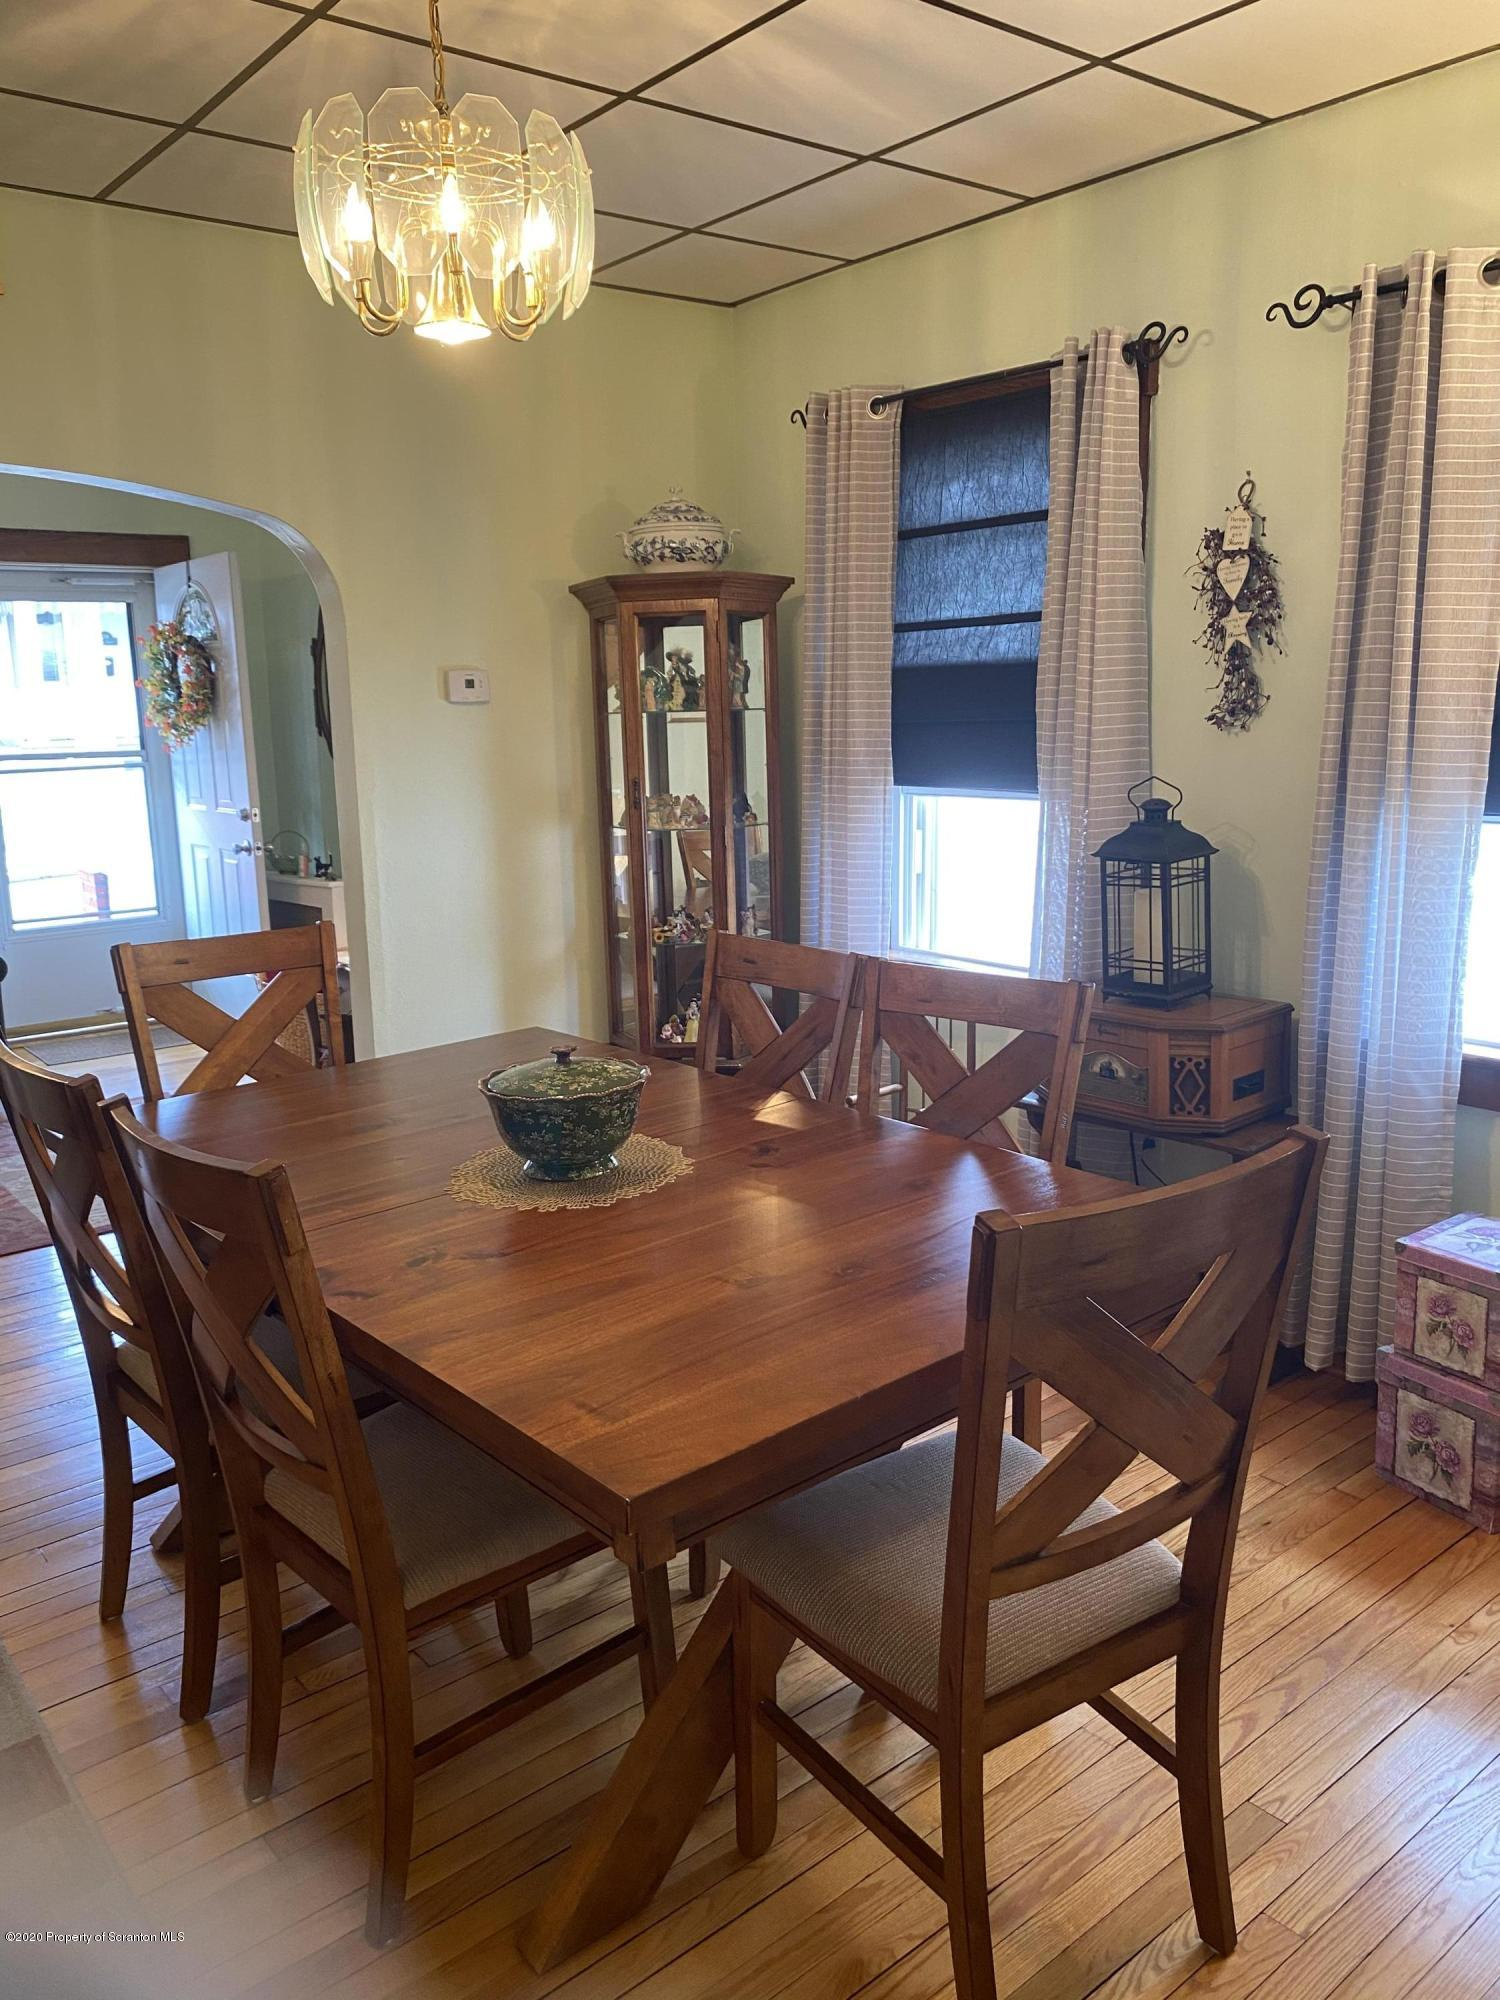 211 Alicia St, Old Forge, Pennsylvania 18518, 2 Bedrooms Bedrooms, 5 Rooms Rooms,2 BathroomsBathrooms,Single Family,For Sale,Alicia,20-2264